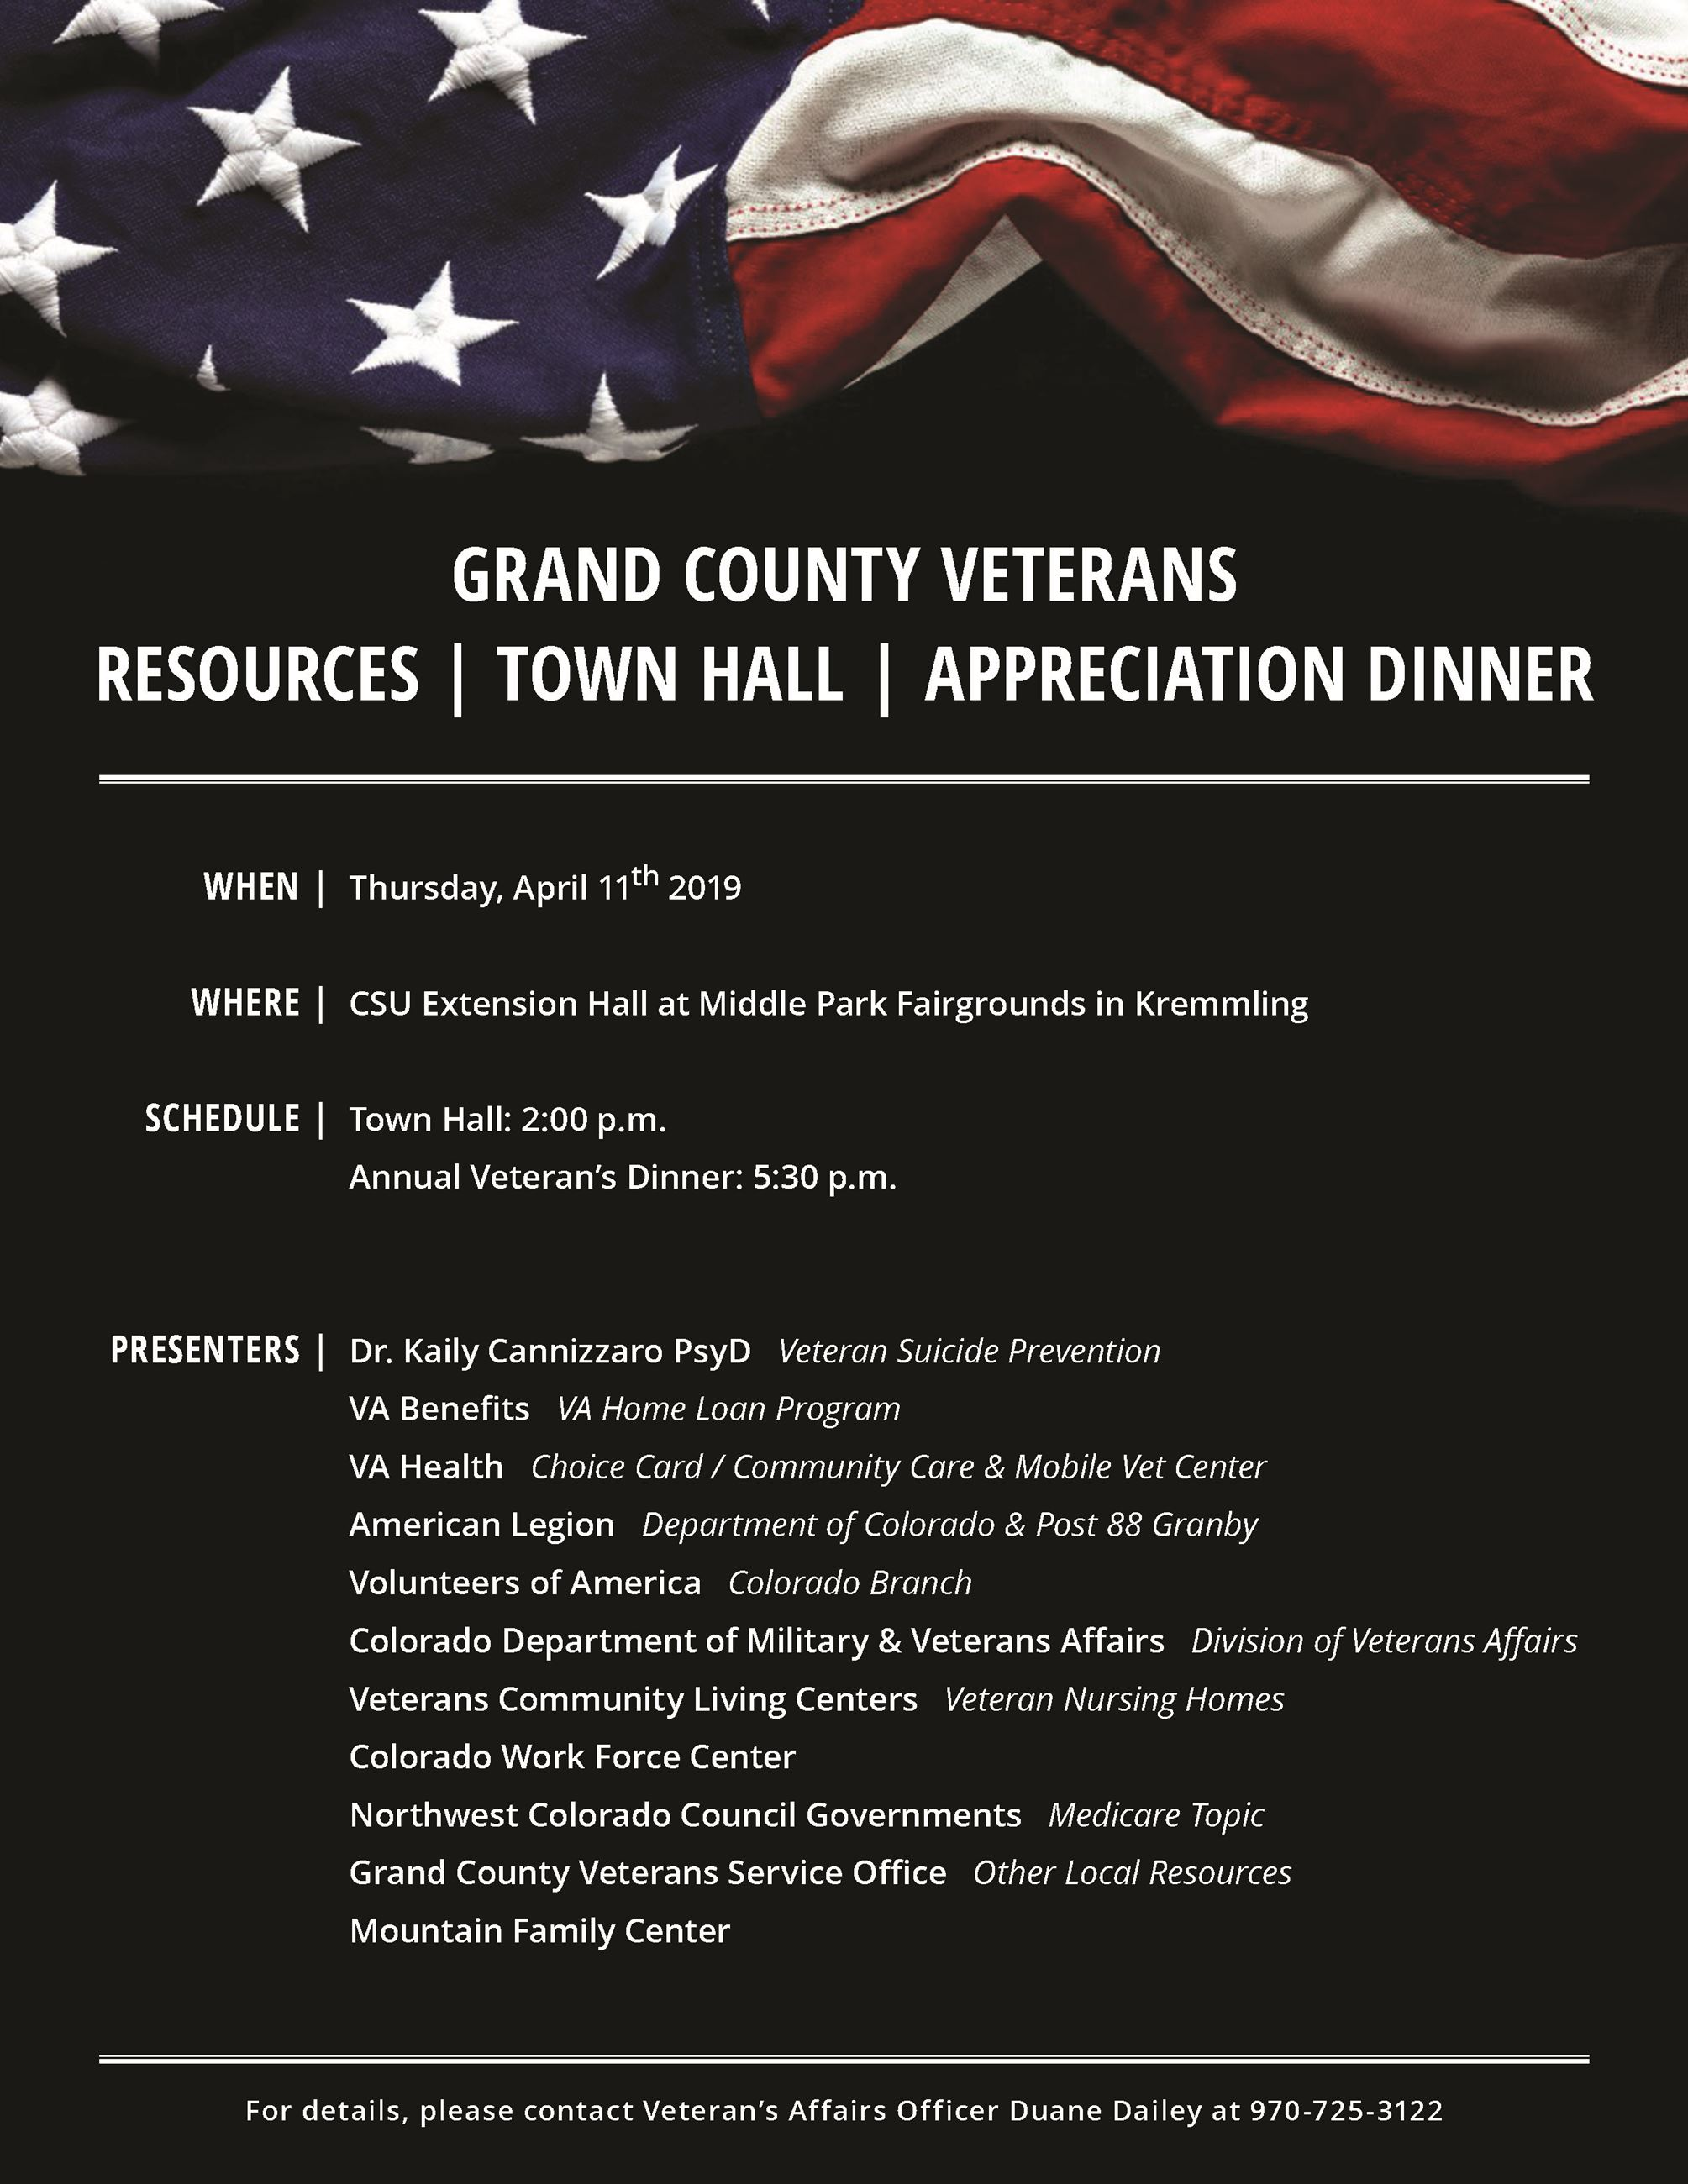 GRAND COUNTY VETERANS RESOURCES | TOWN HALL | APPRECIATION DINNER WHEN | WHERE | SCHEDULE | PRESENTE